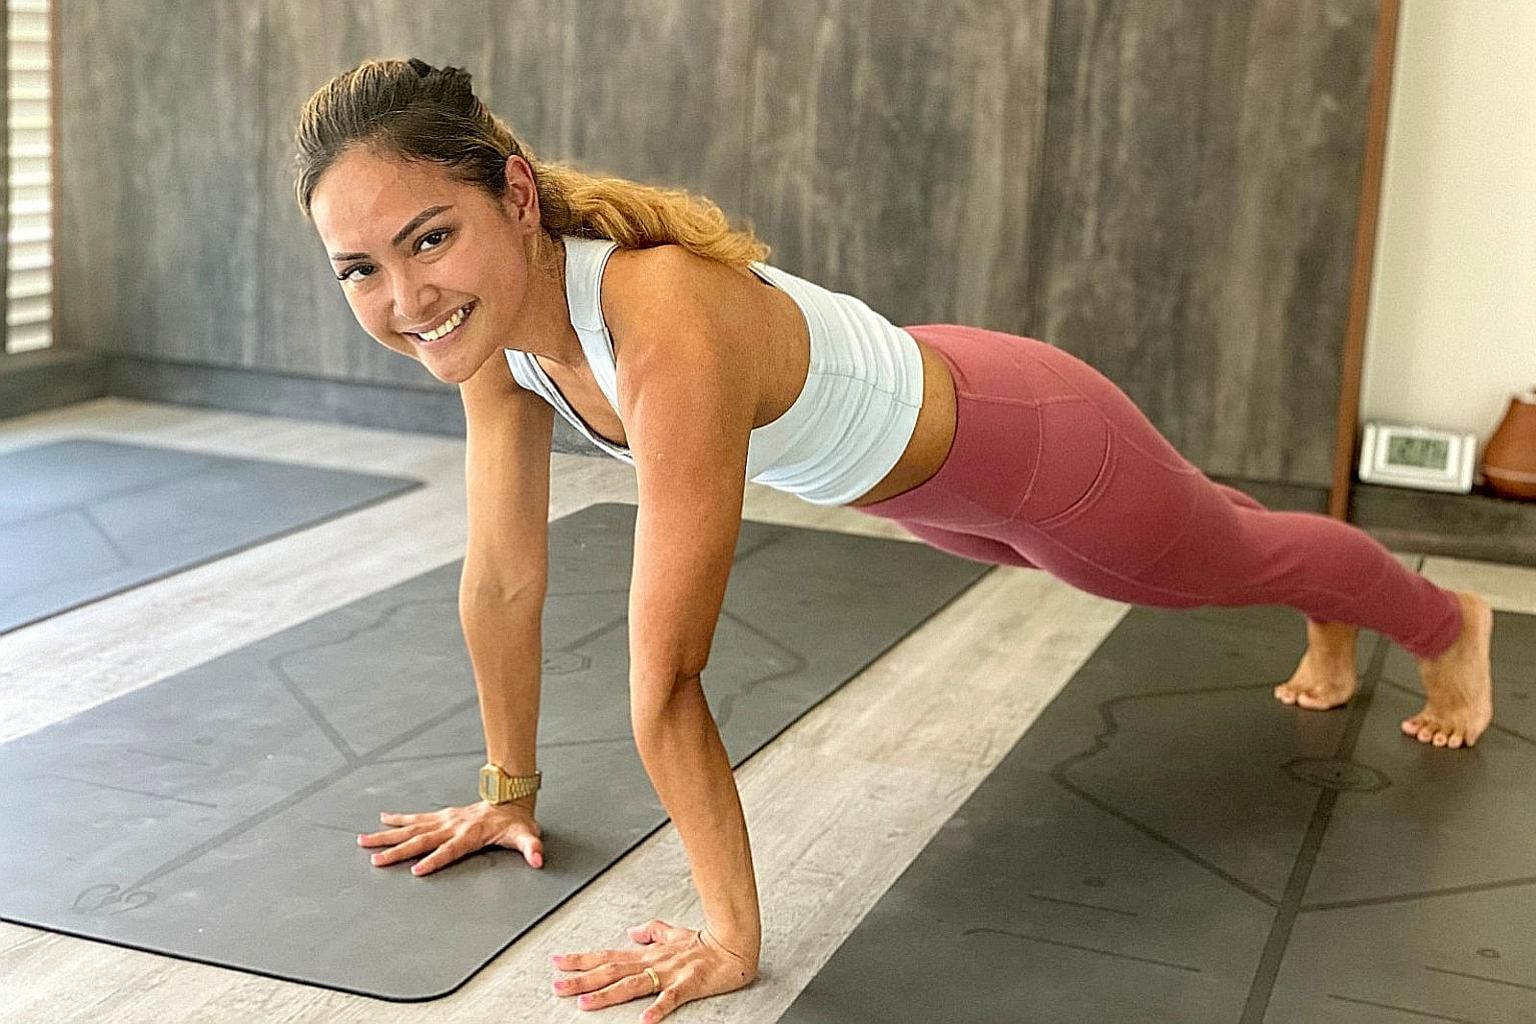 Ms Danielle Hajar, who is also a certified yoga instructor, plans her schedule a week ahead and sets aside time to exercise and relax.